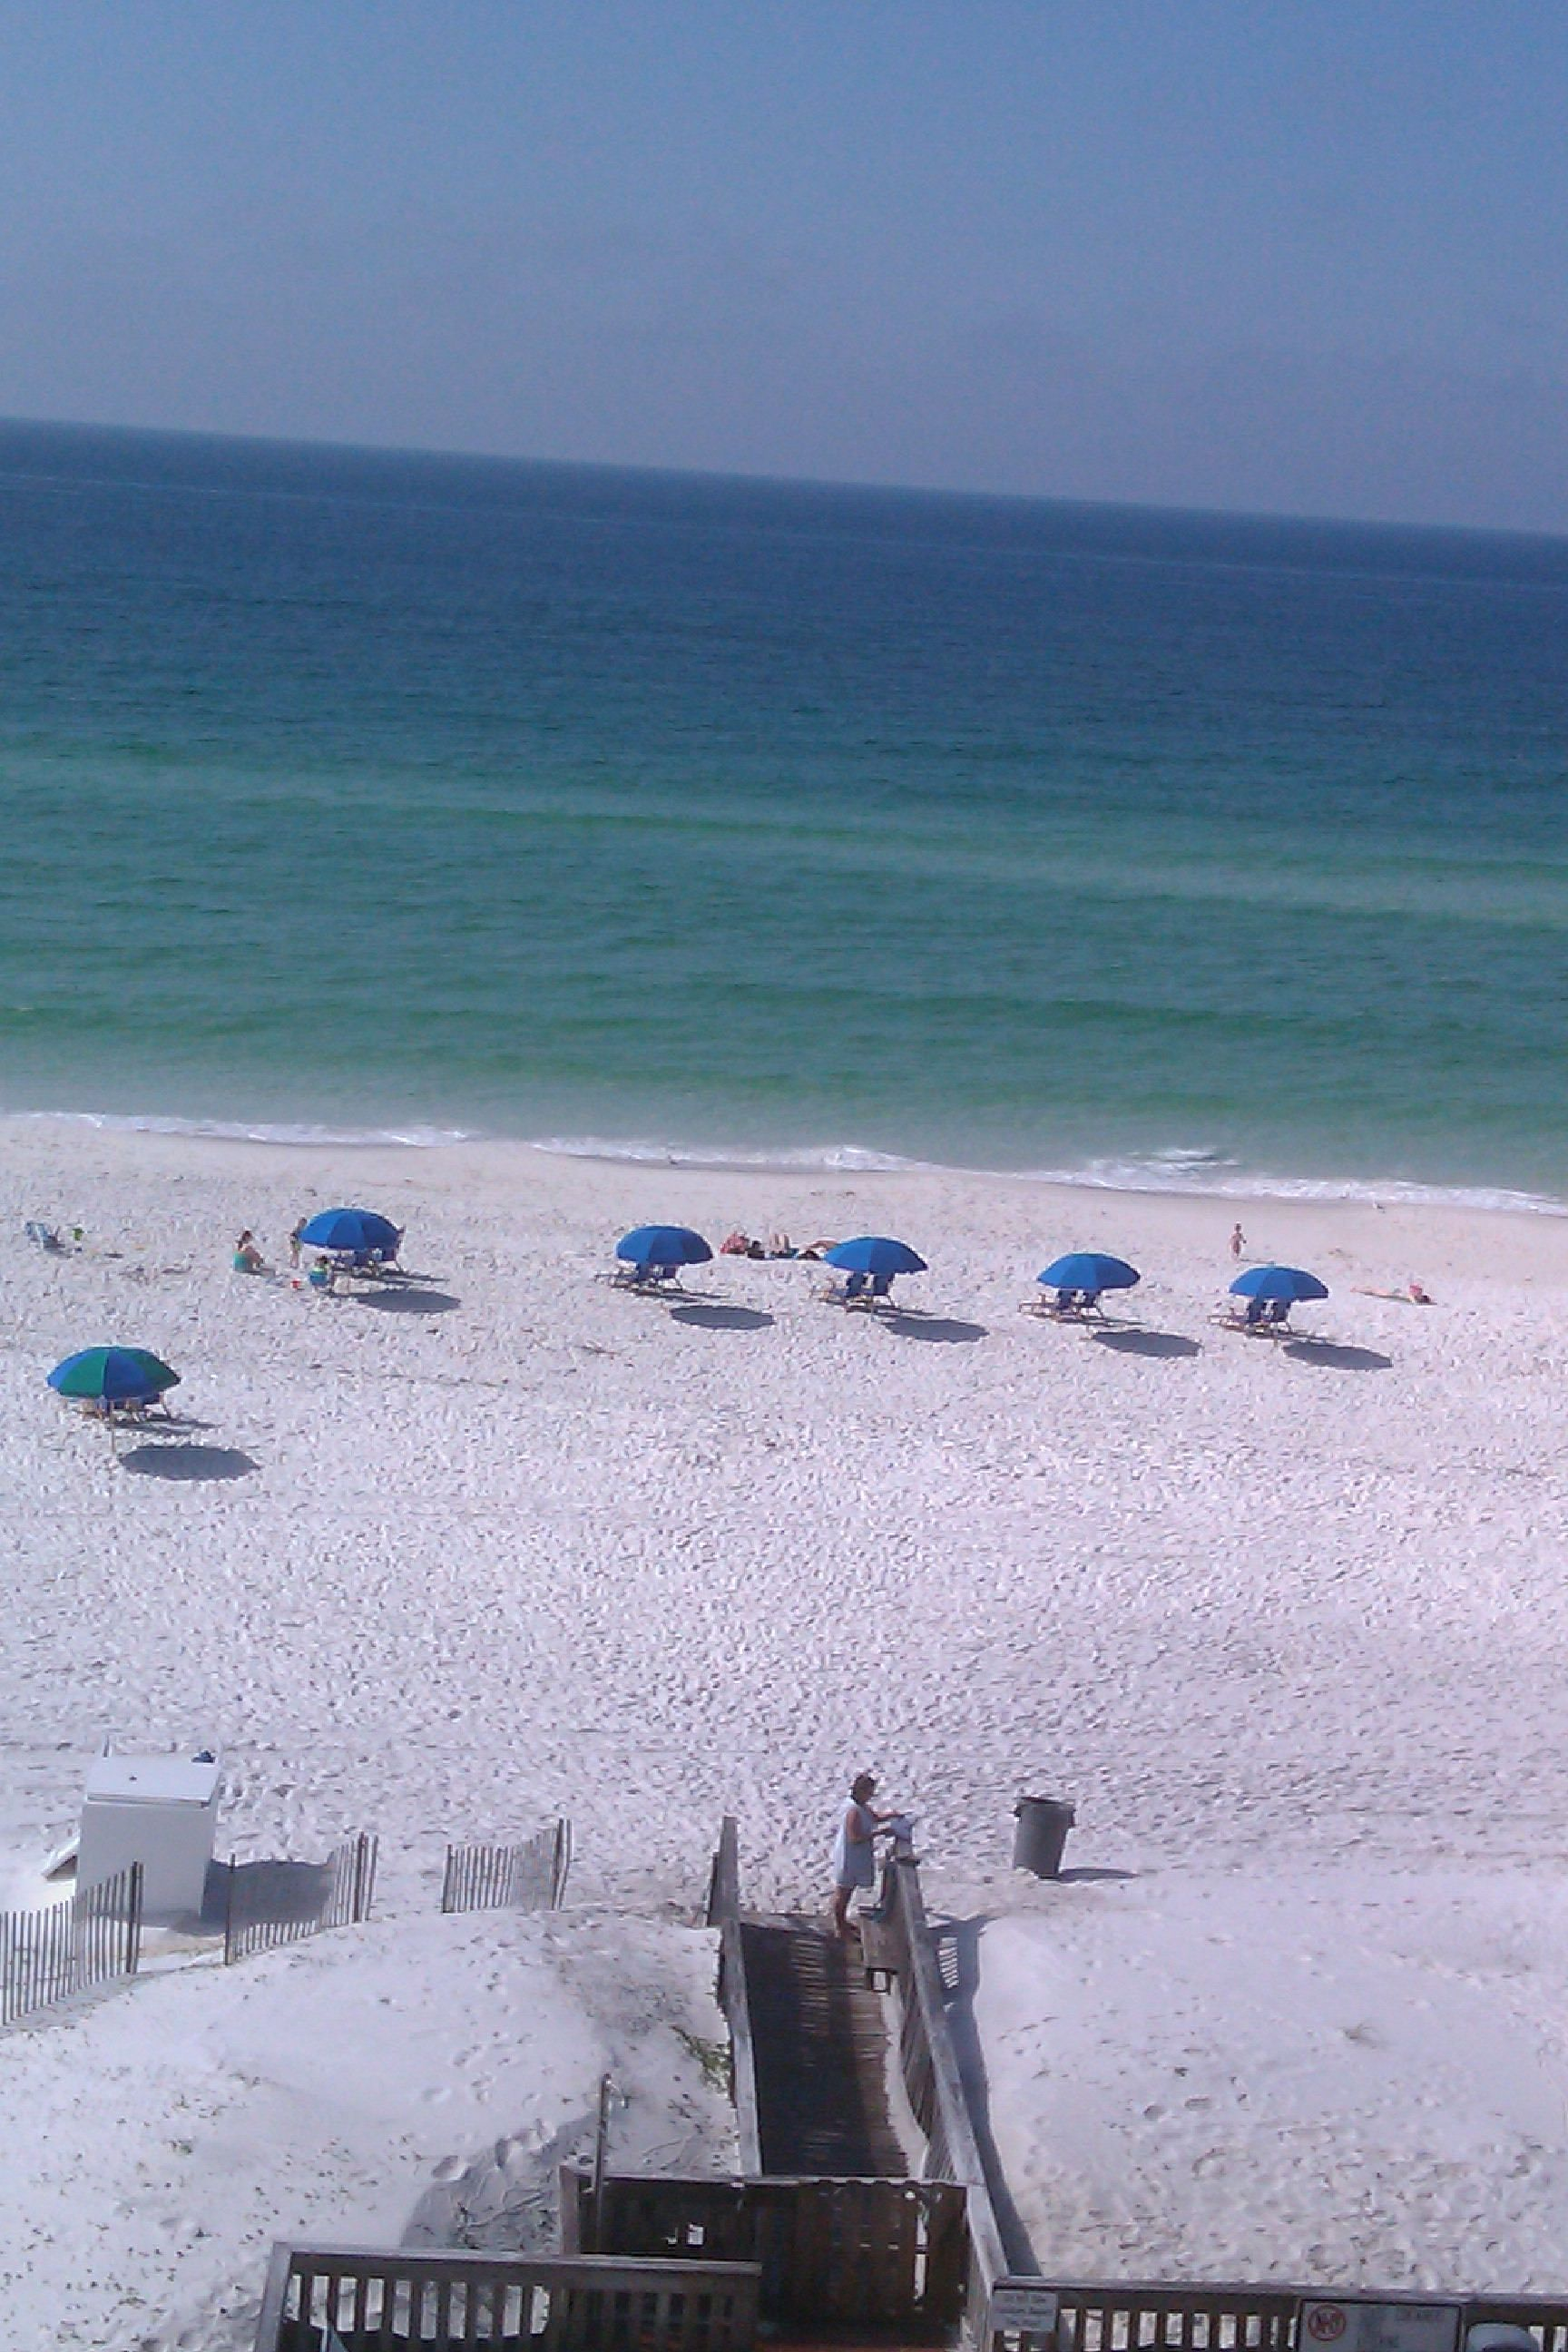 Fort Walton Beach (FL) United States  city images : Fort Walton Beach, FL | UNITED STATES OF AMERICA WHAT BEAUTY | Pinter ...